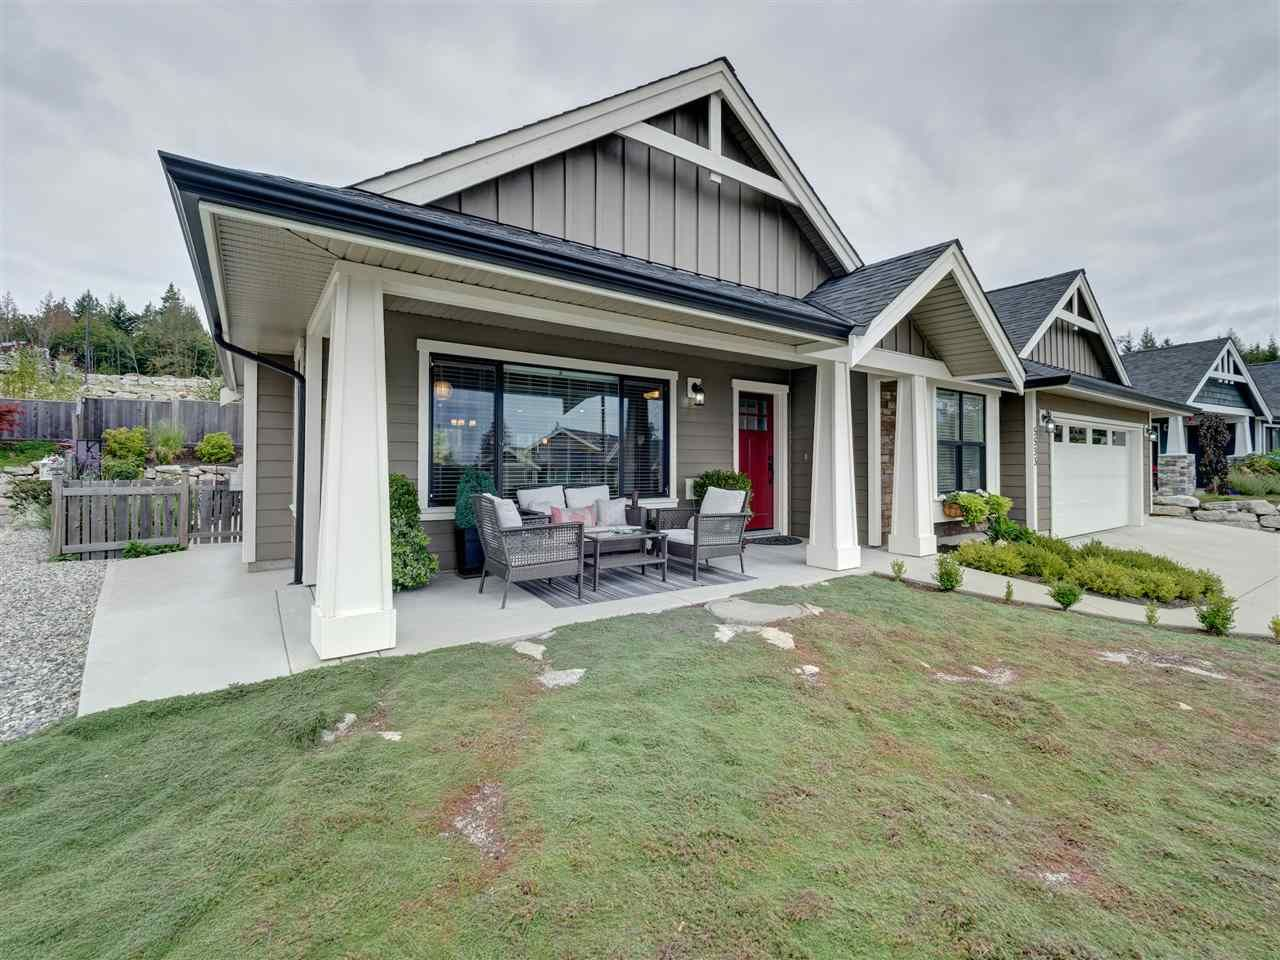 """Main Photo: 5533 PEREGRINE Crescent in Sechelt: Sechelt District House for sale in """"Silverstone Heights"""" (Sunshine Coast)  : MLS®# R2397737"""